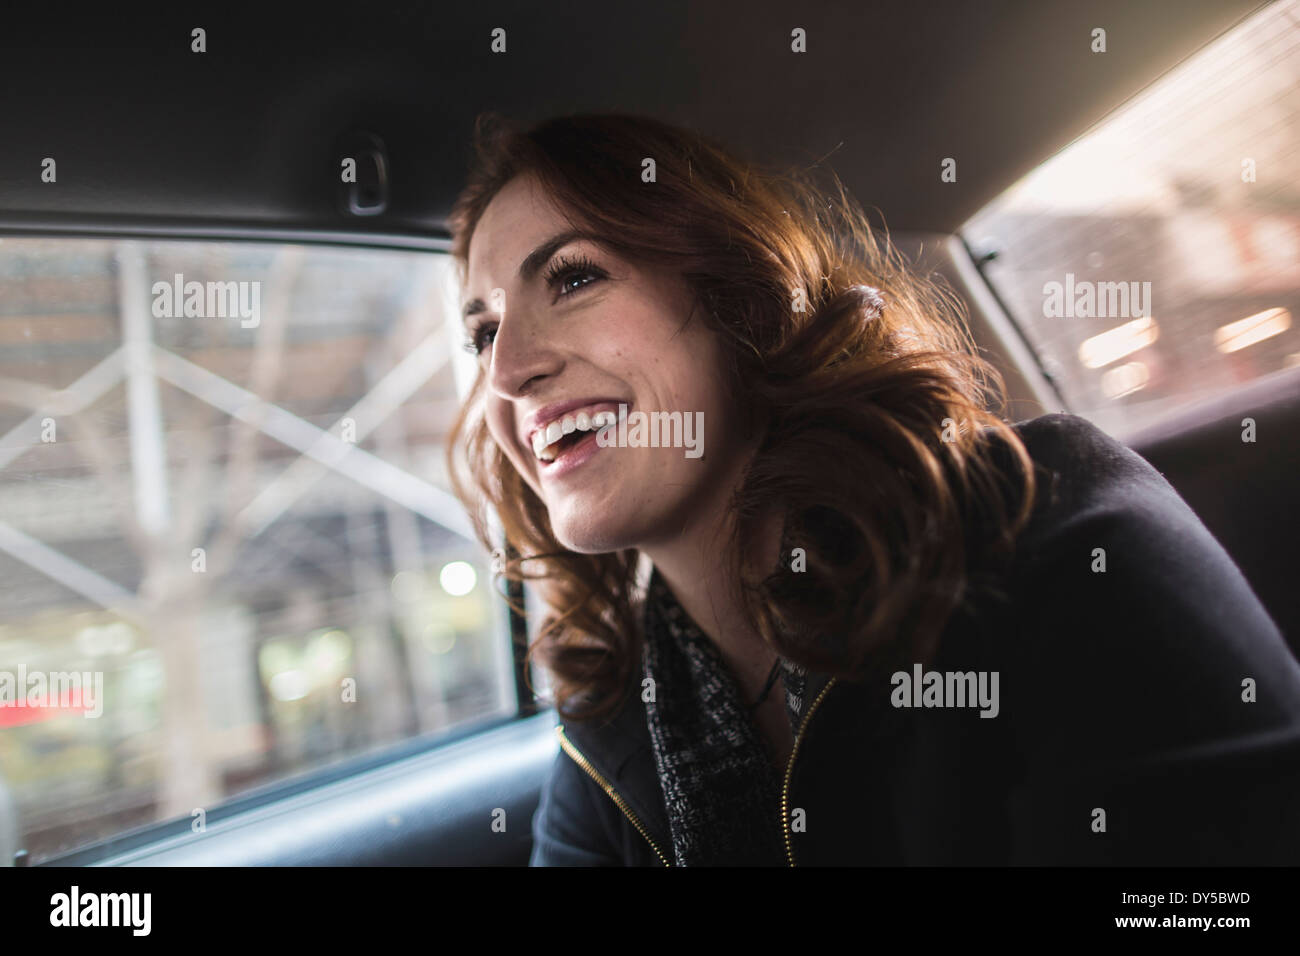 Happy young woman in back seat of taxi - Stock Image